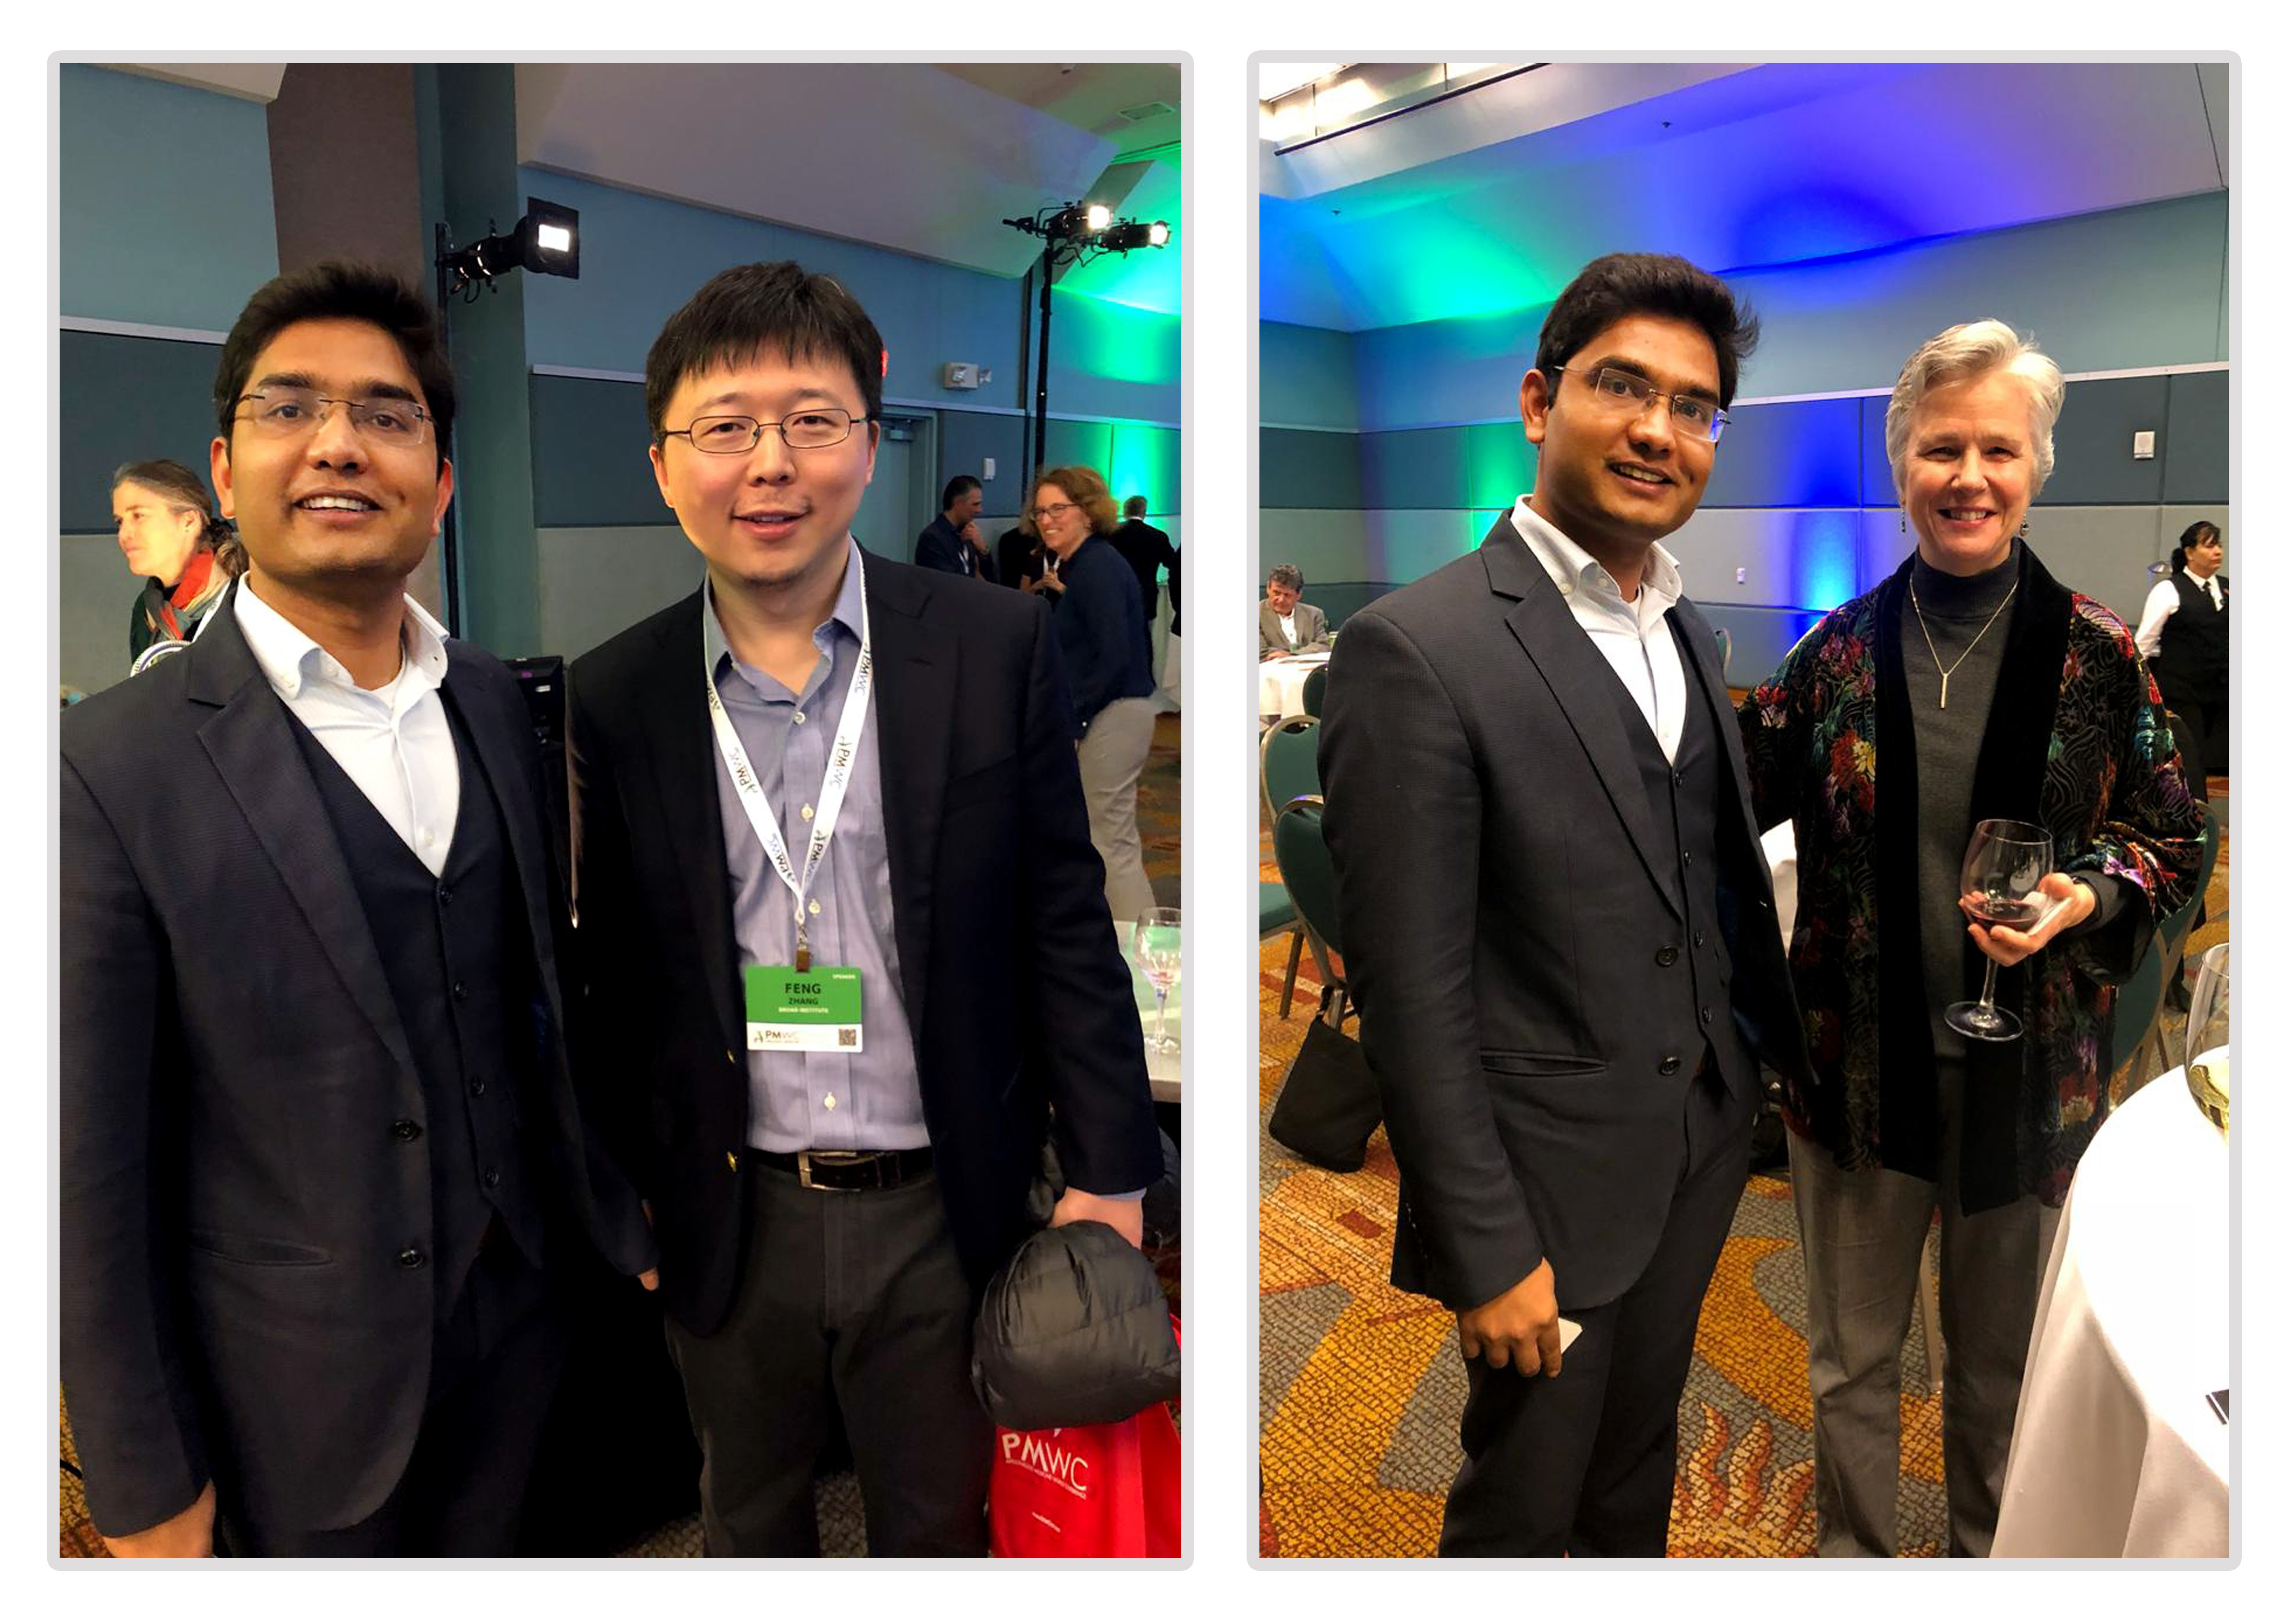 Picture 1: Faisal Ahmad, CEO BIS Research interacting with Feng Zheng (L) and Sharon Terry (R) regarding their work in precision medicine during the award gala.